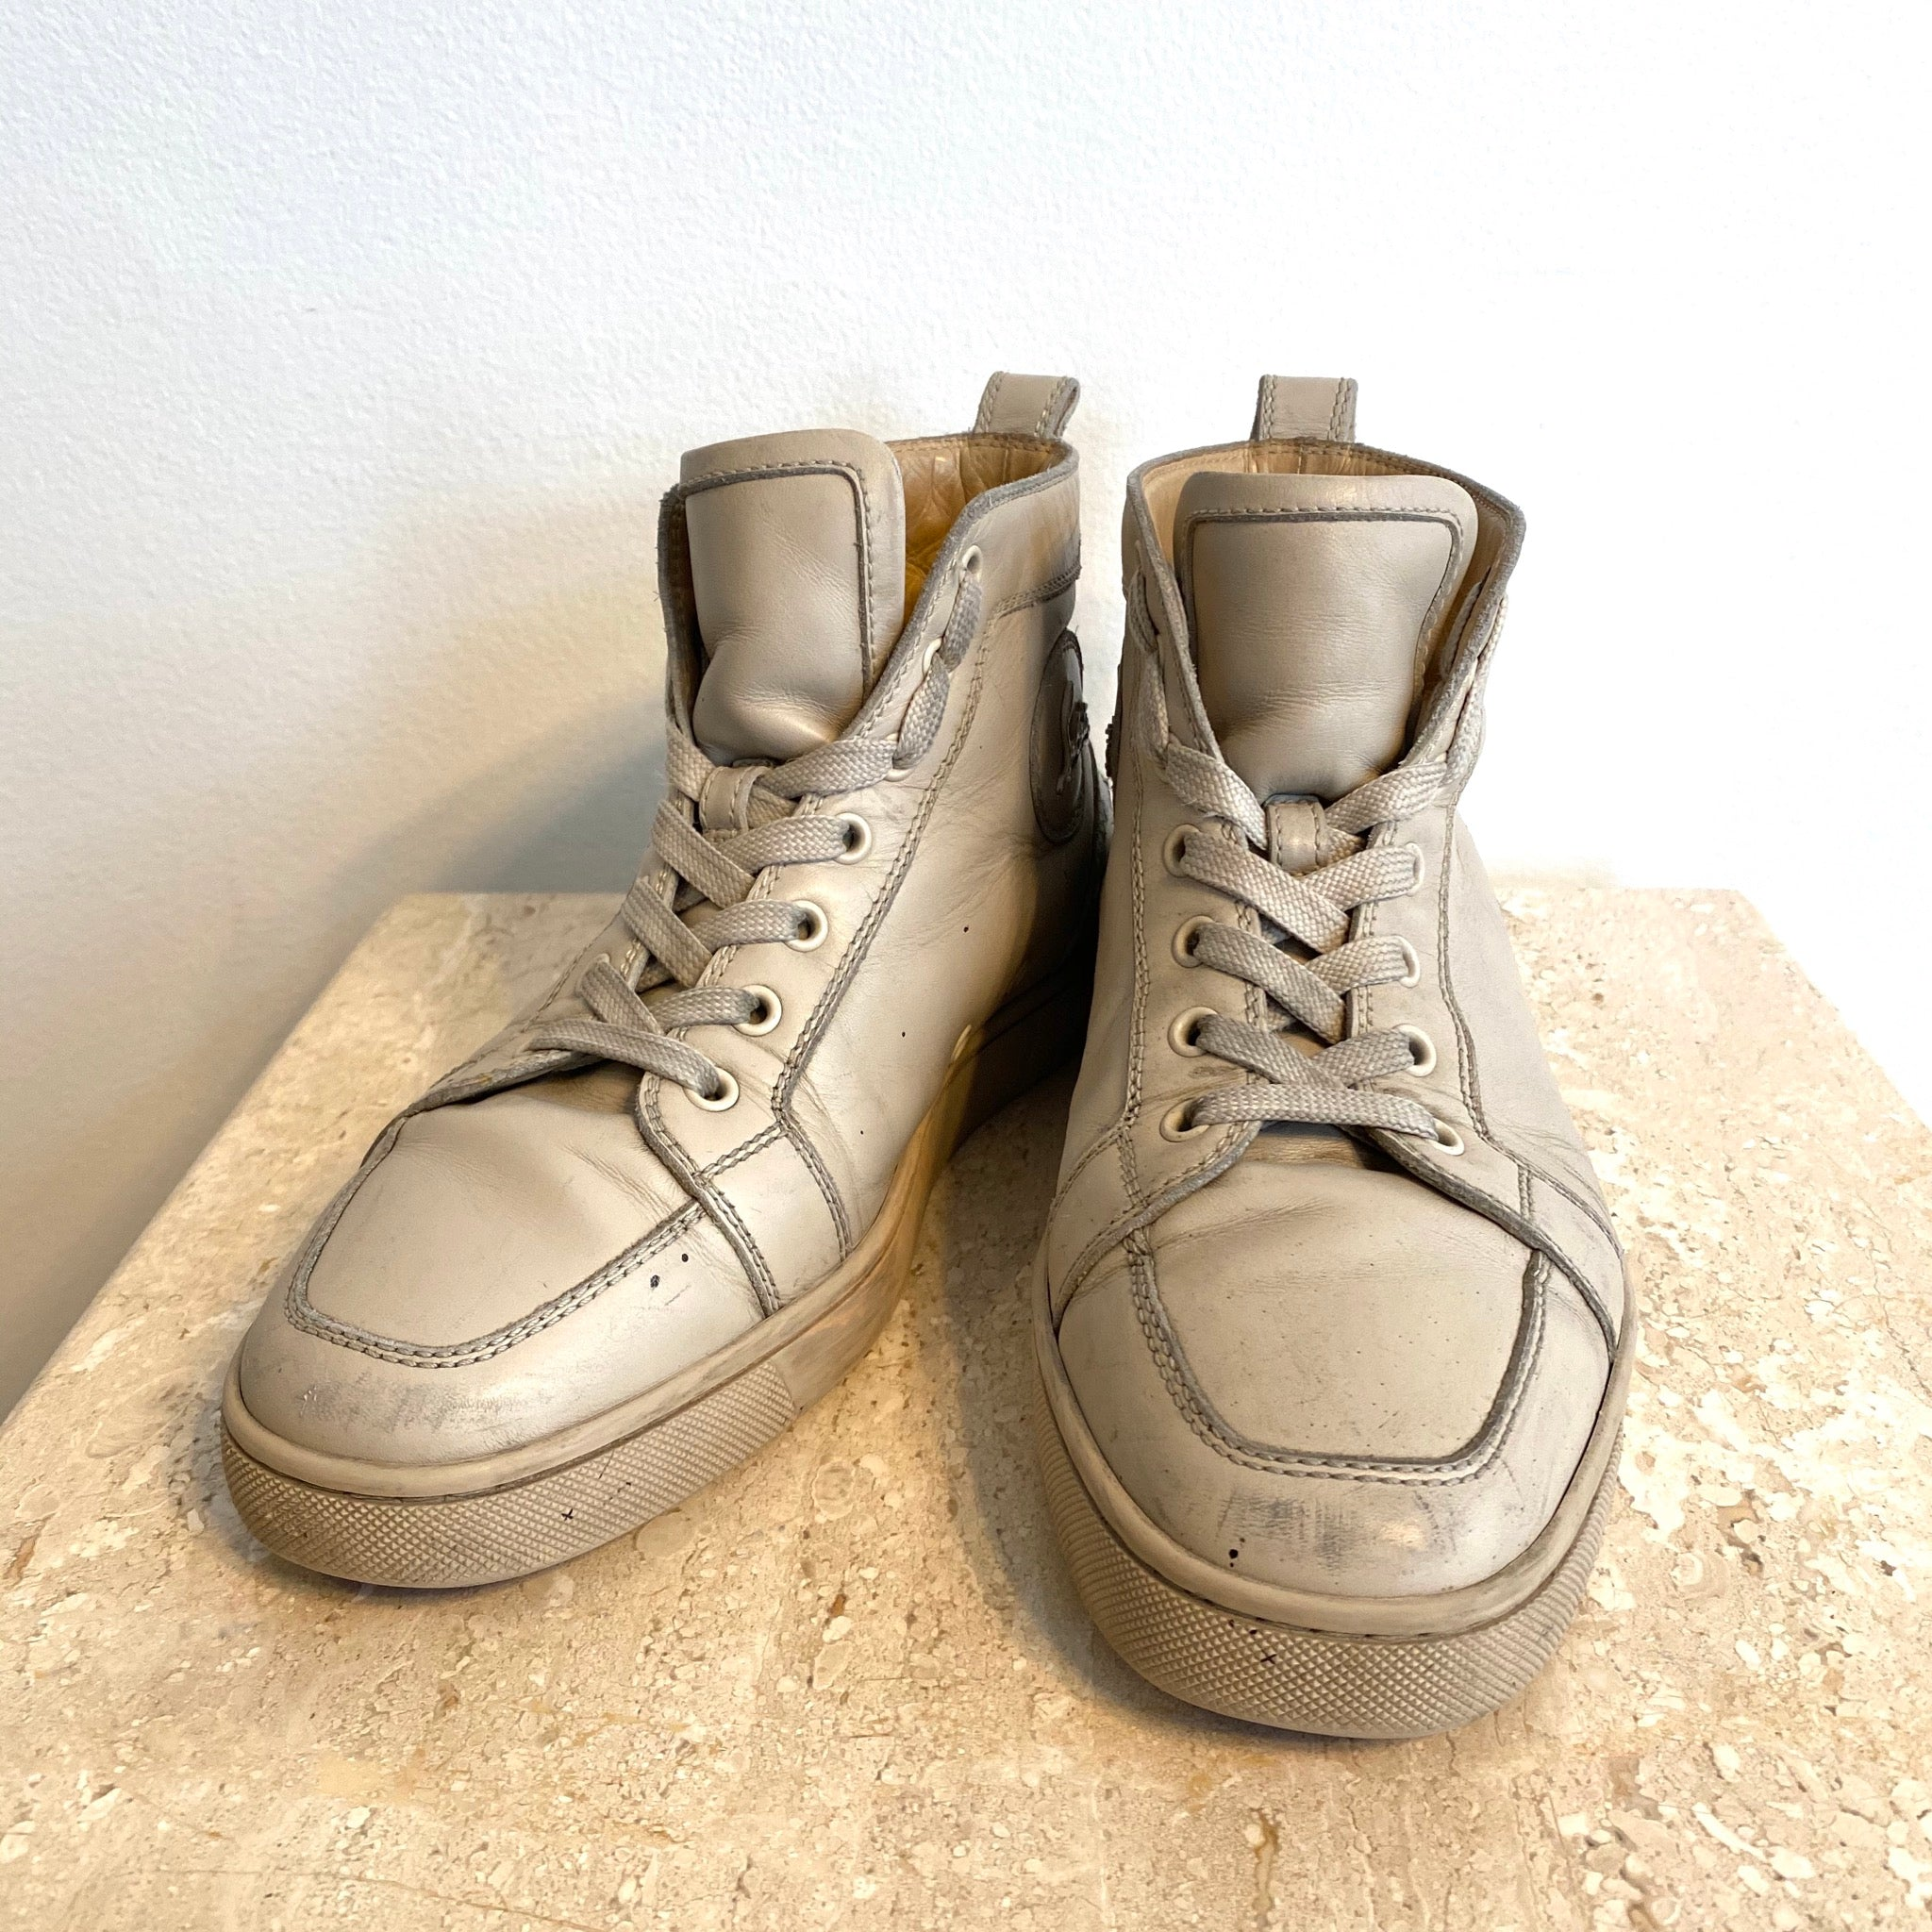 Authentic CHRISTIAN LOUBOUTIN High Tops